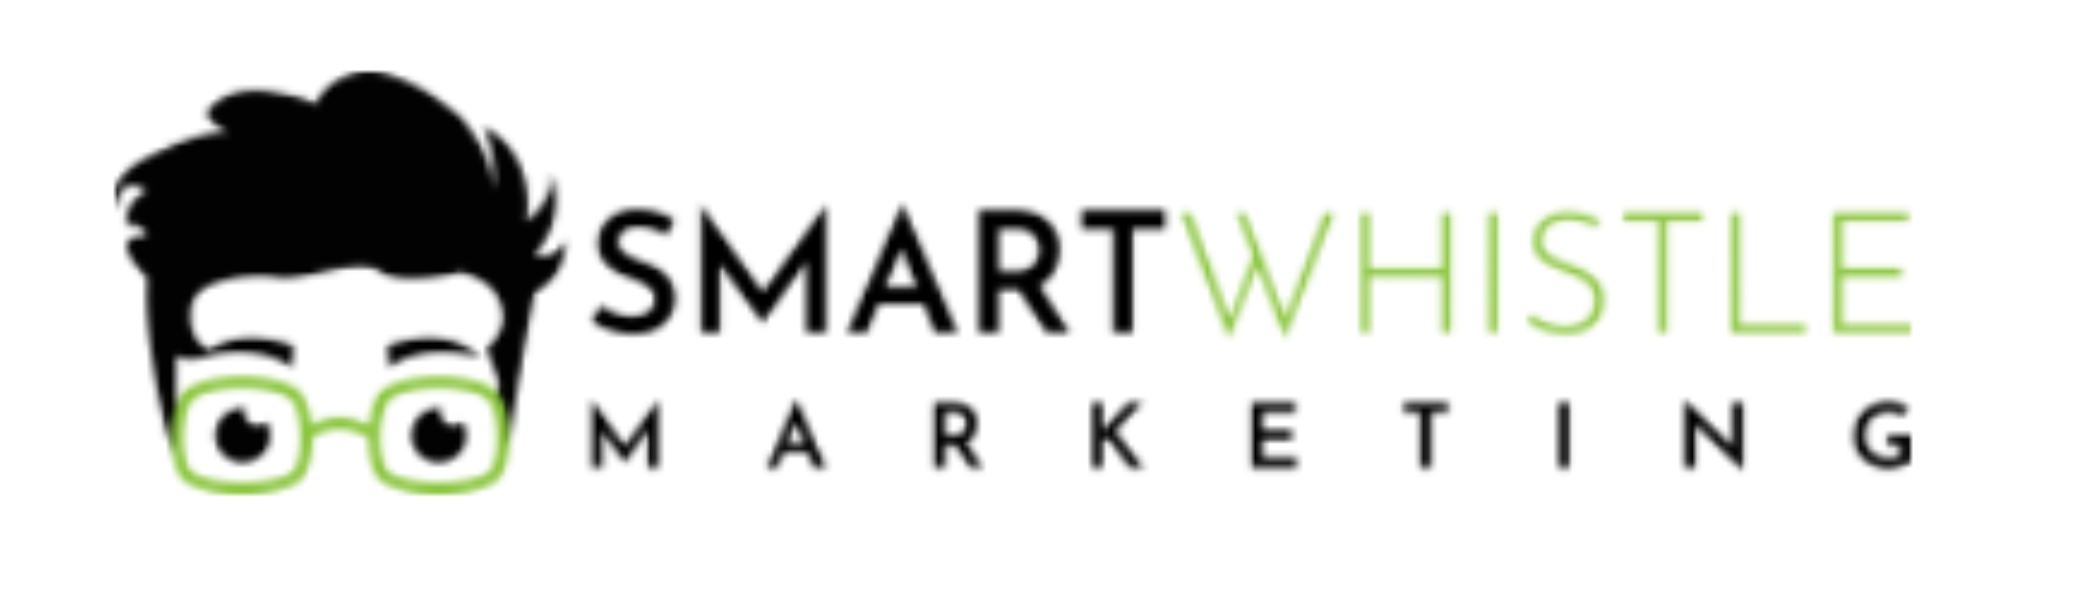 Smart Whistle Marketing LLC